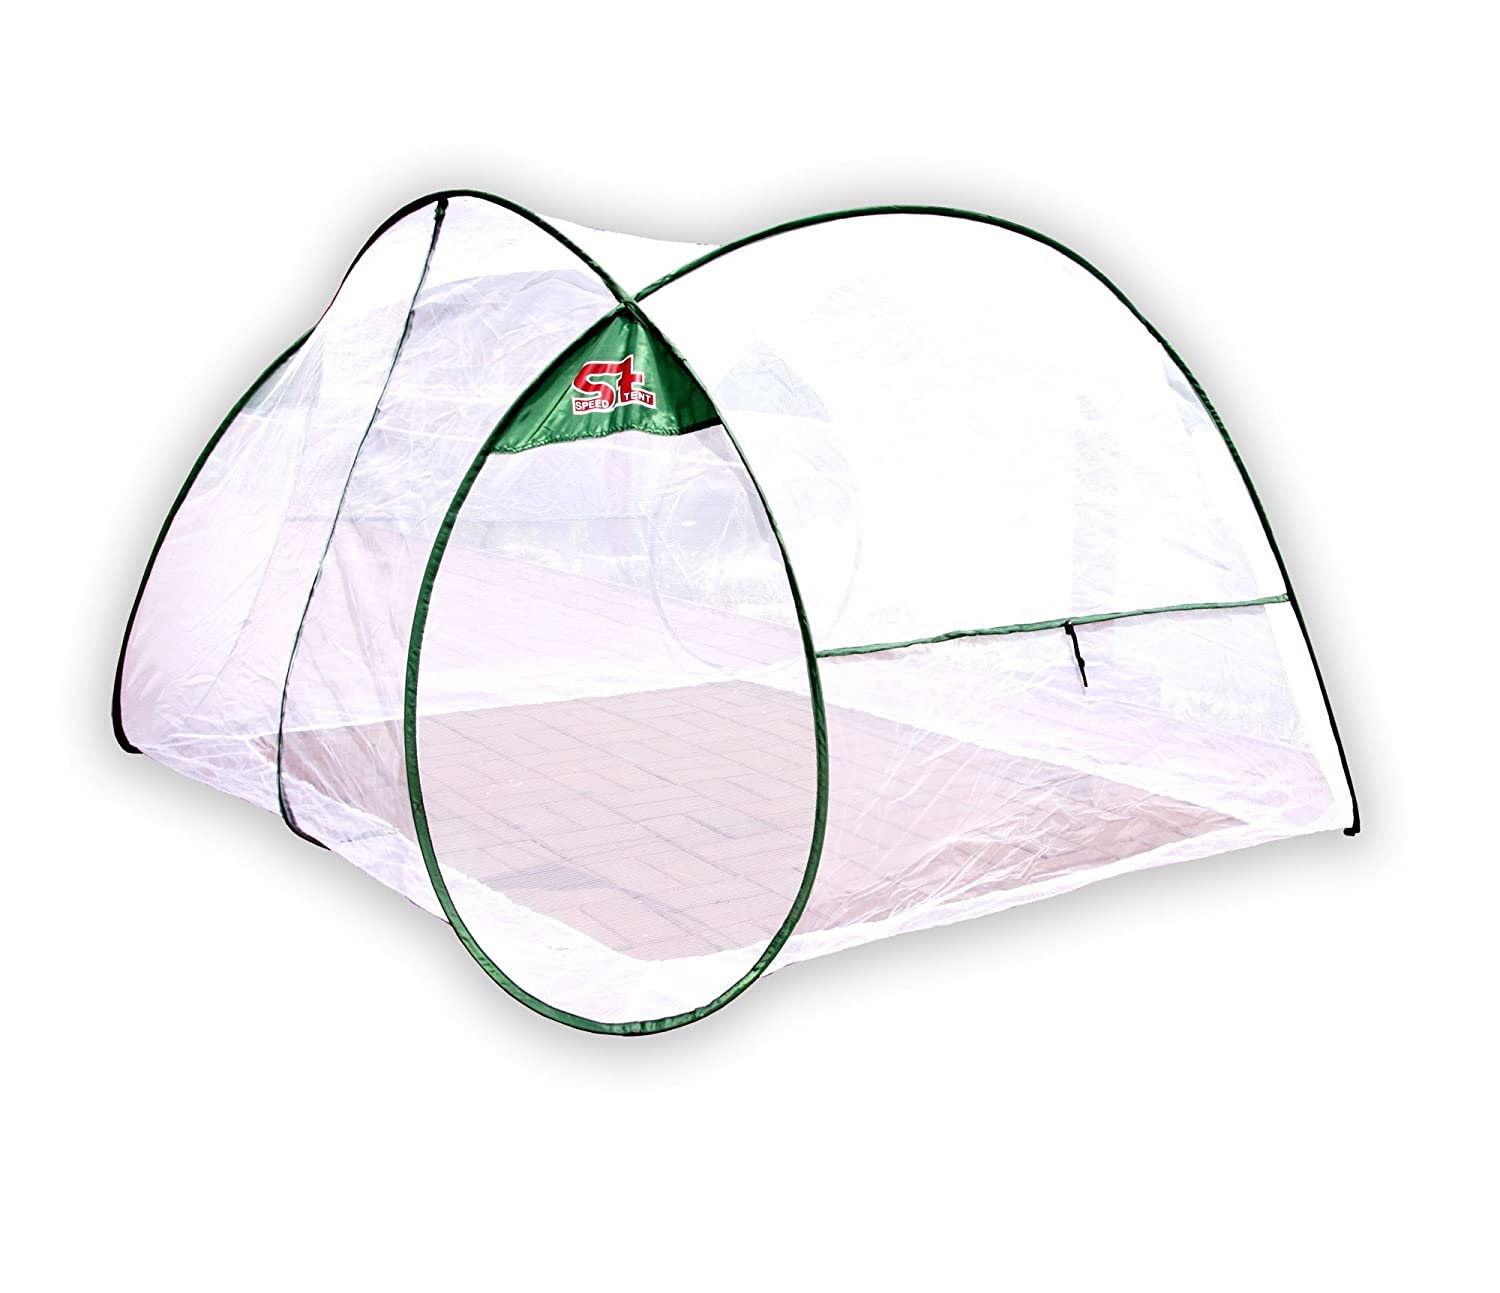 SpeedTent Portable Foldable Mosquito Net Tent Insect protection nets Anti-Bug Net 4~5 Person net tents by SpeedTent   B00IGNU7DI